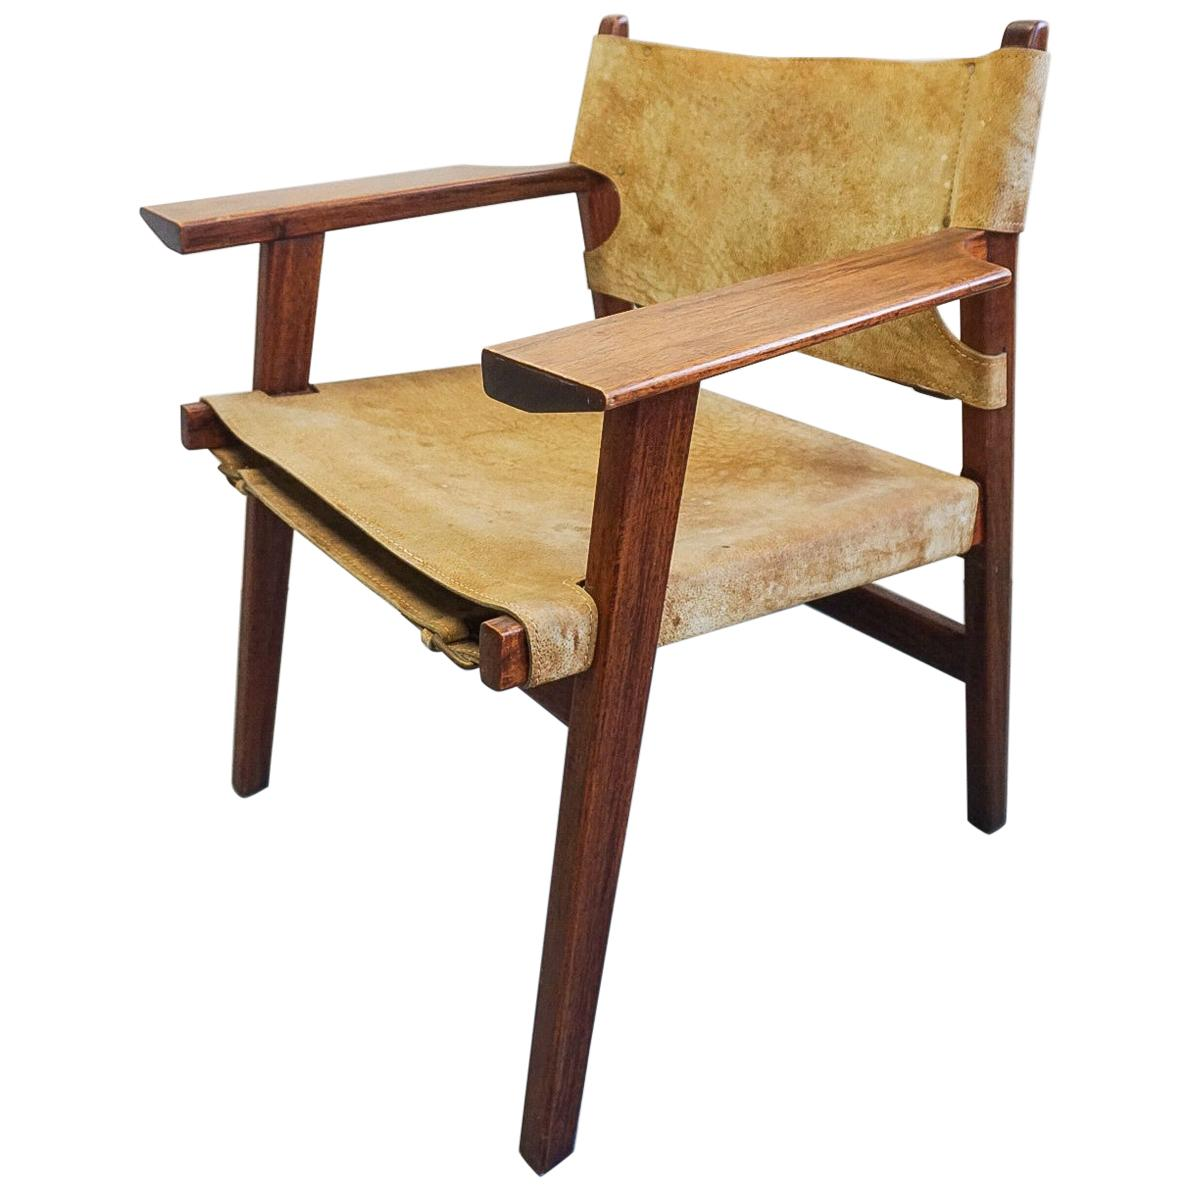 Borge Mogensen style leather sling chair